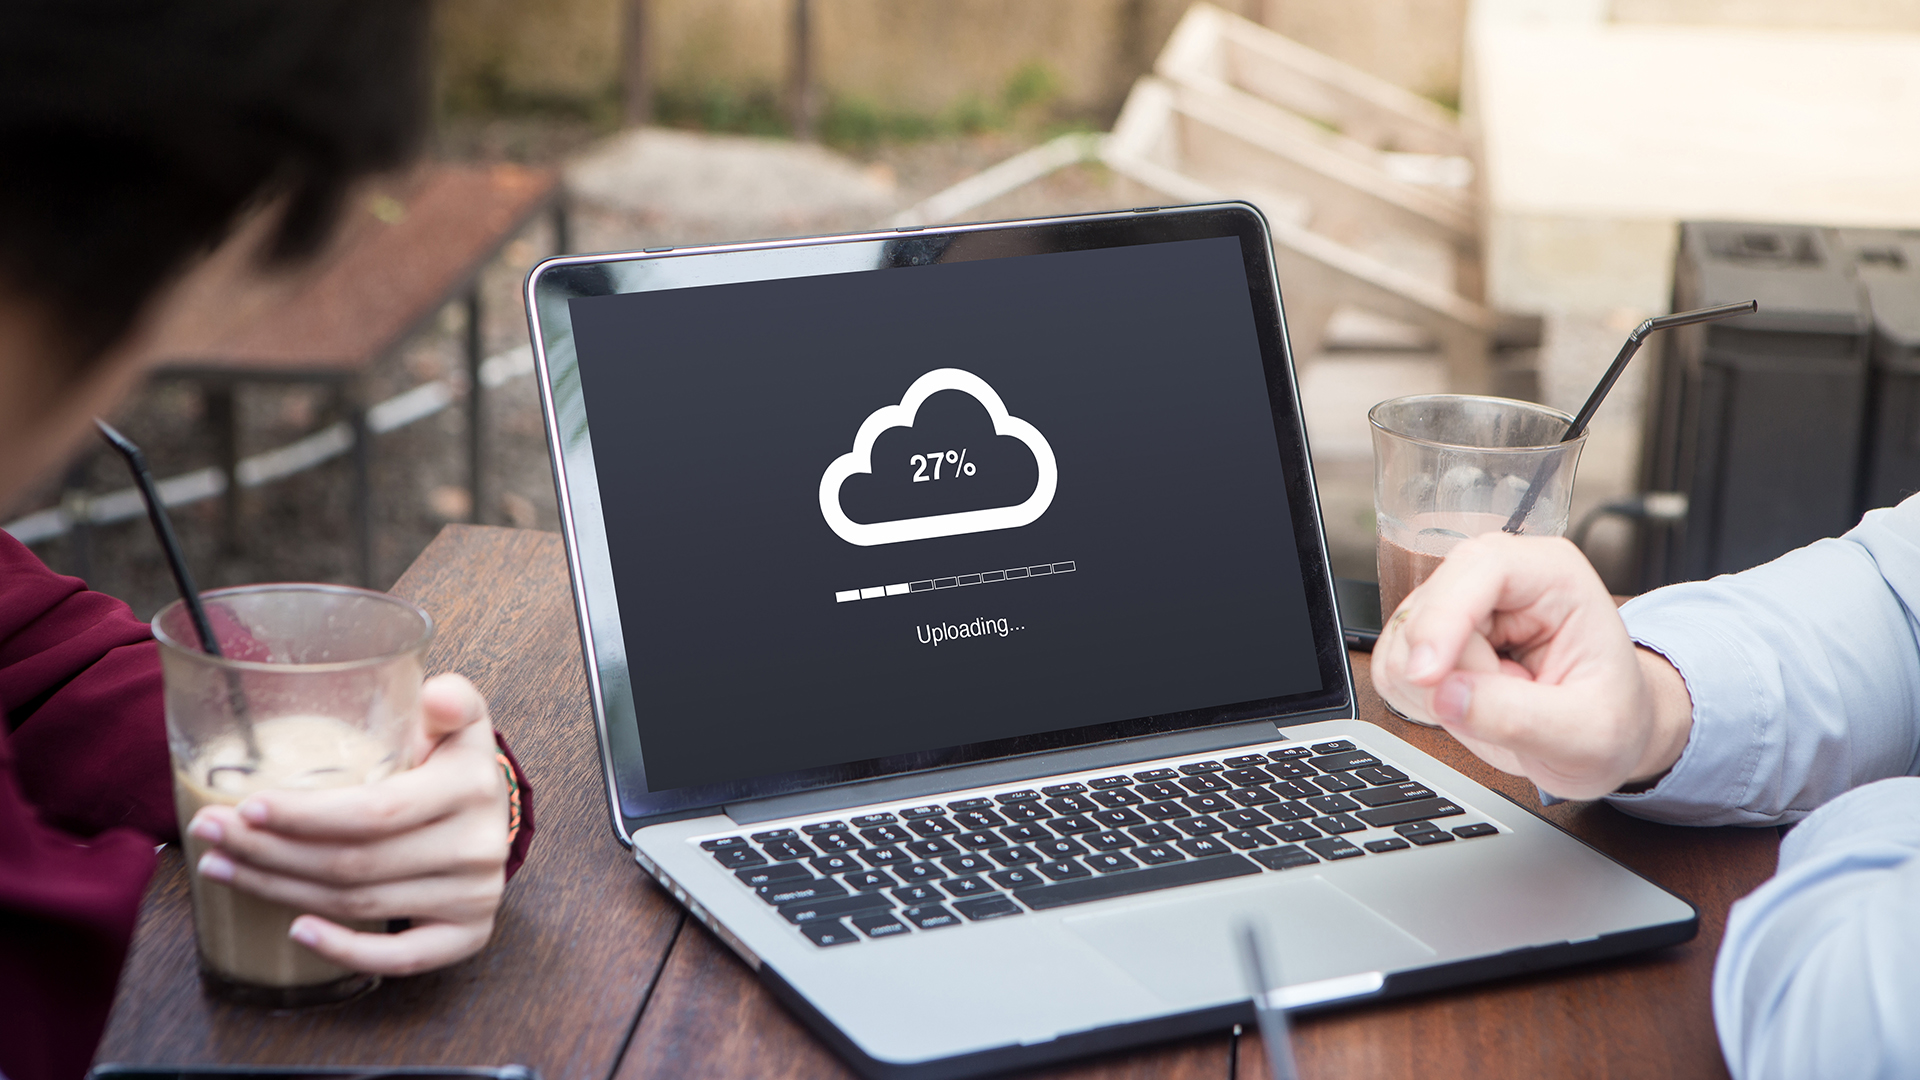 The difference between cloud storage and cloud backup | Photofocus